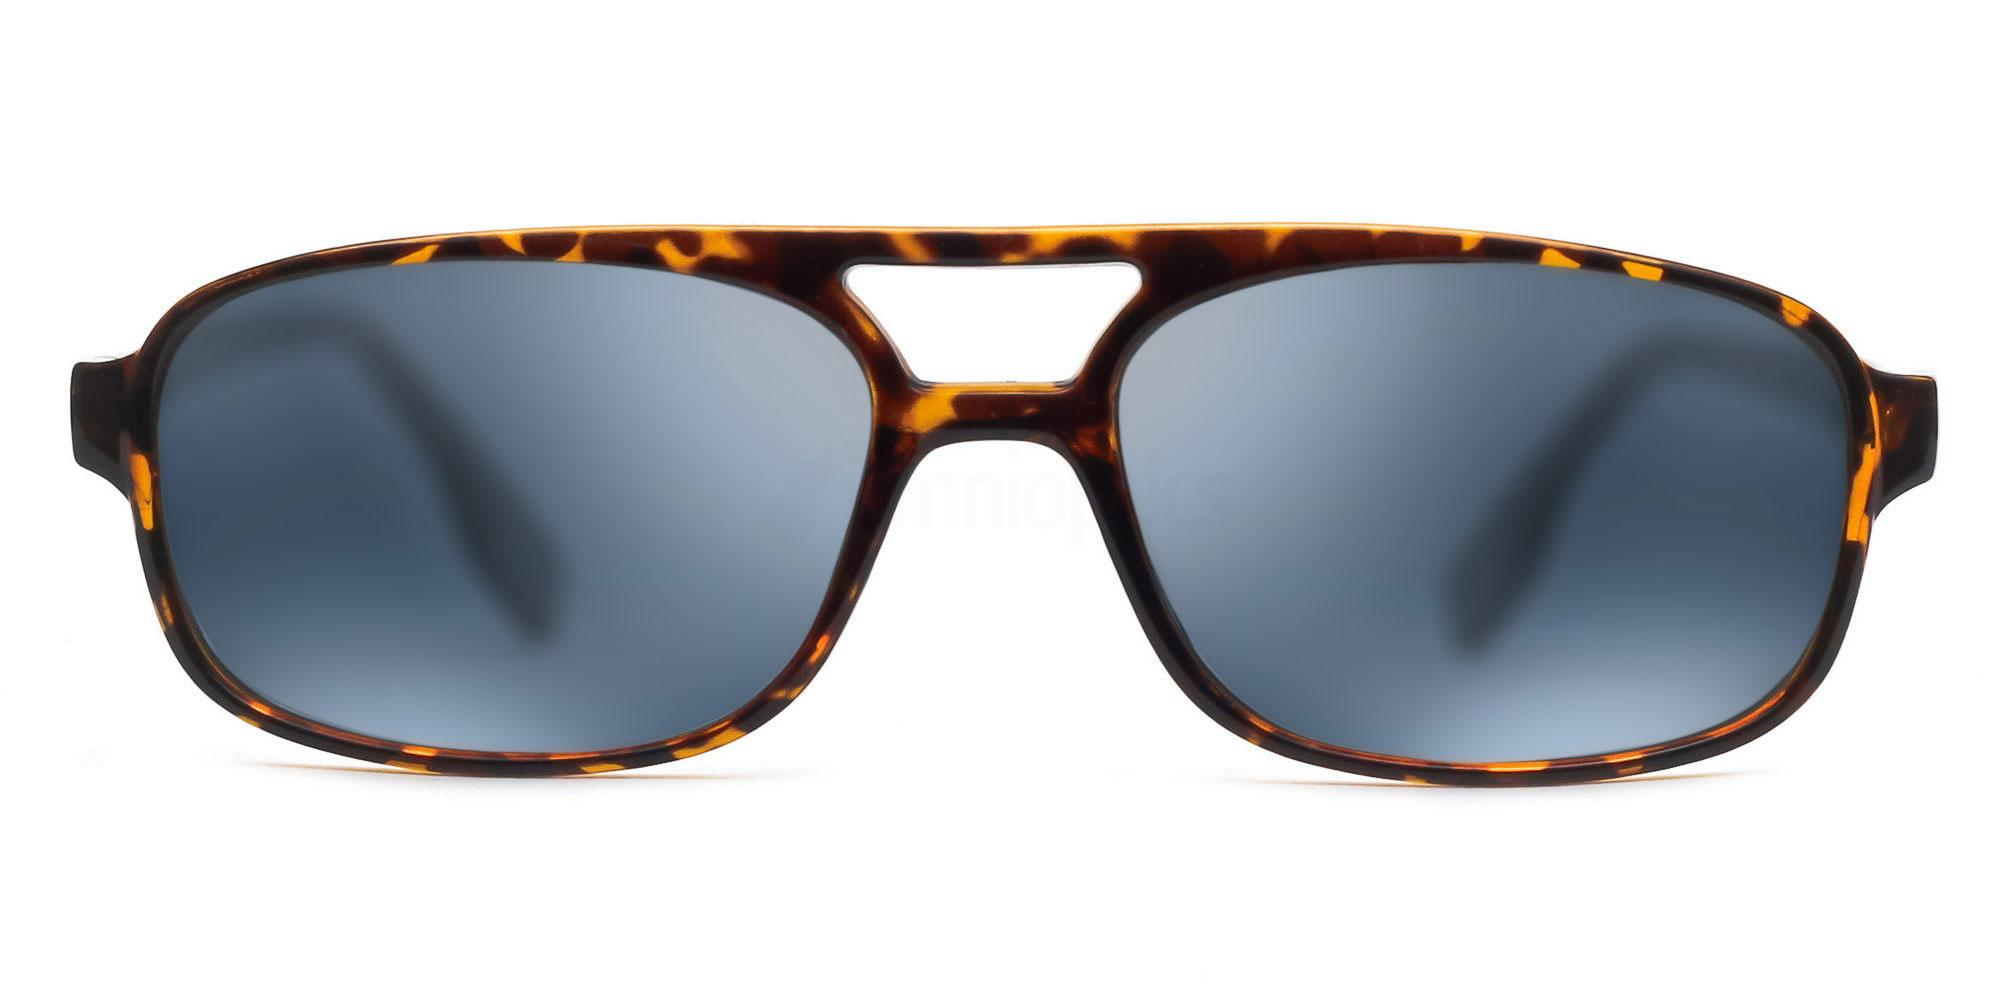 C04 Polarized Grey with Silver Mirror P2395 - Demi Havana (Mirrored Polarized) , Savannah